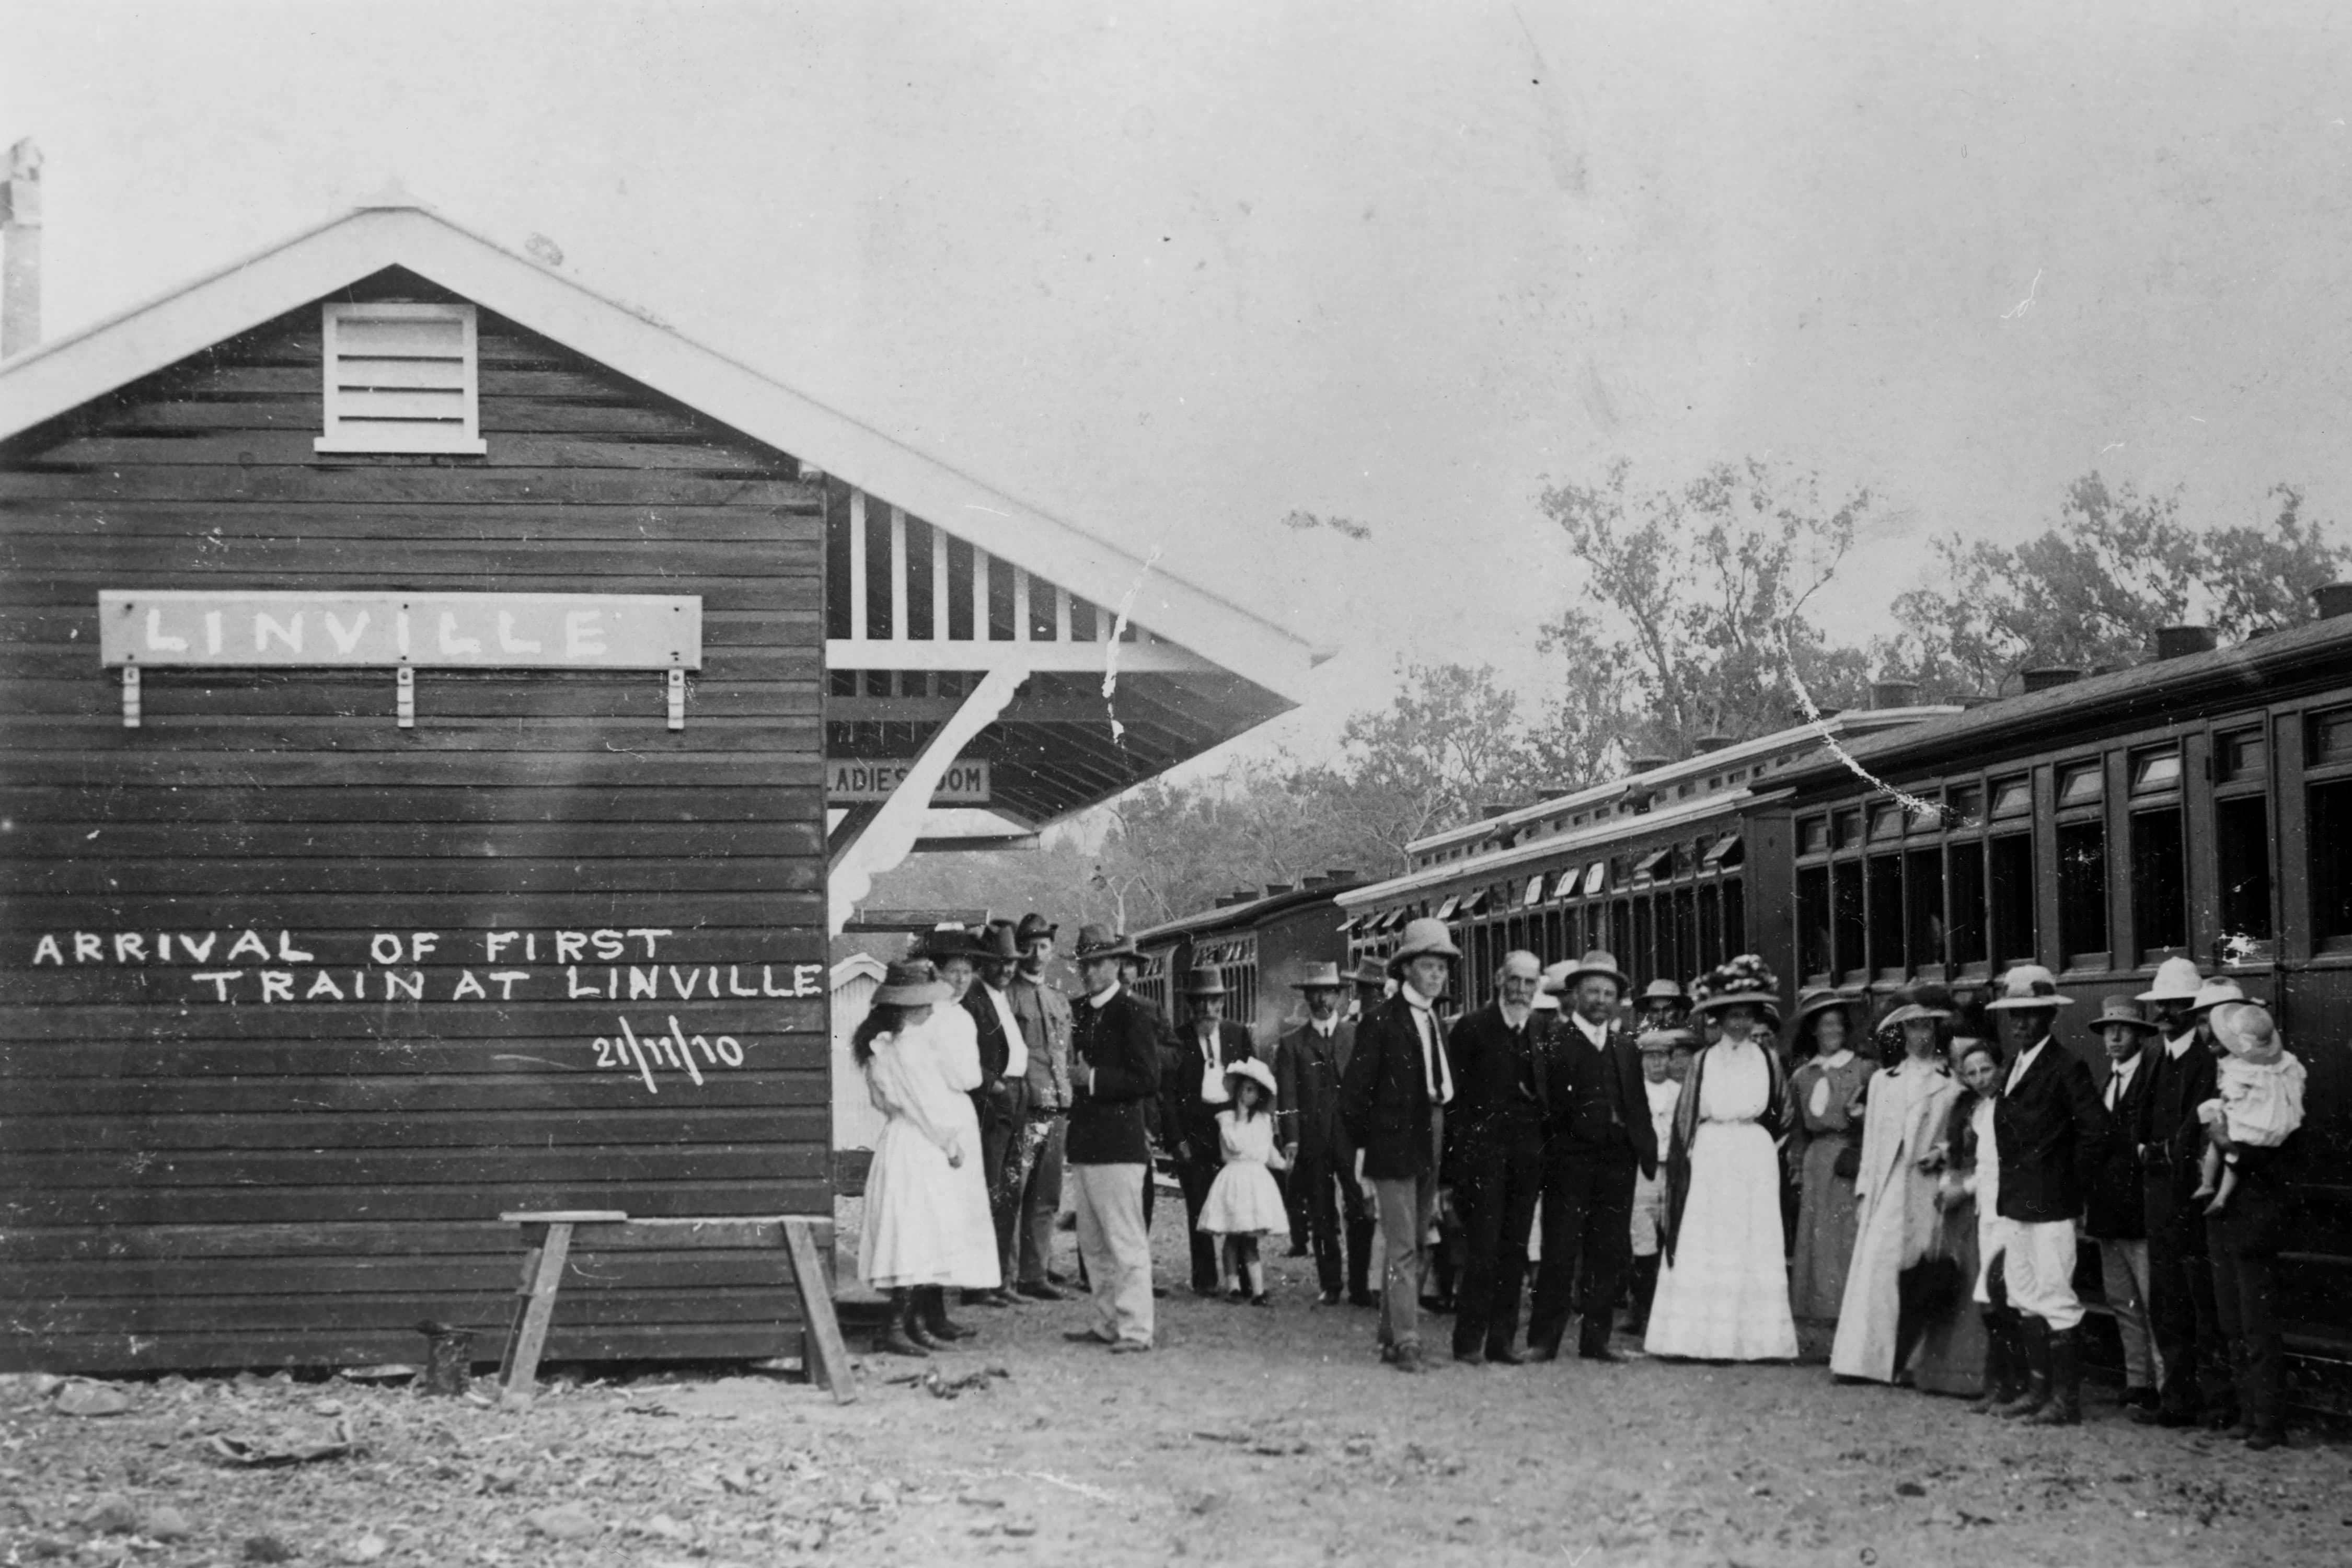 First-train-at-Linville